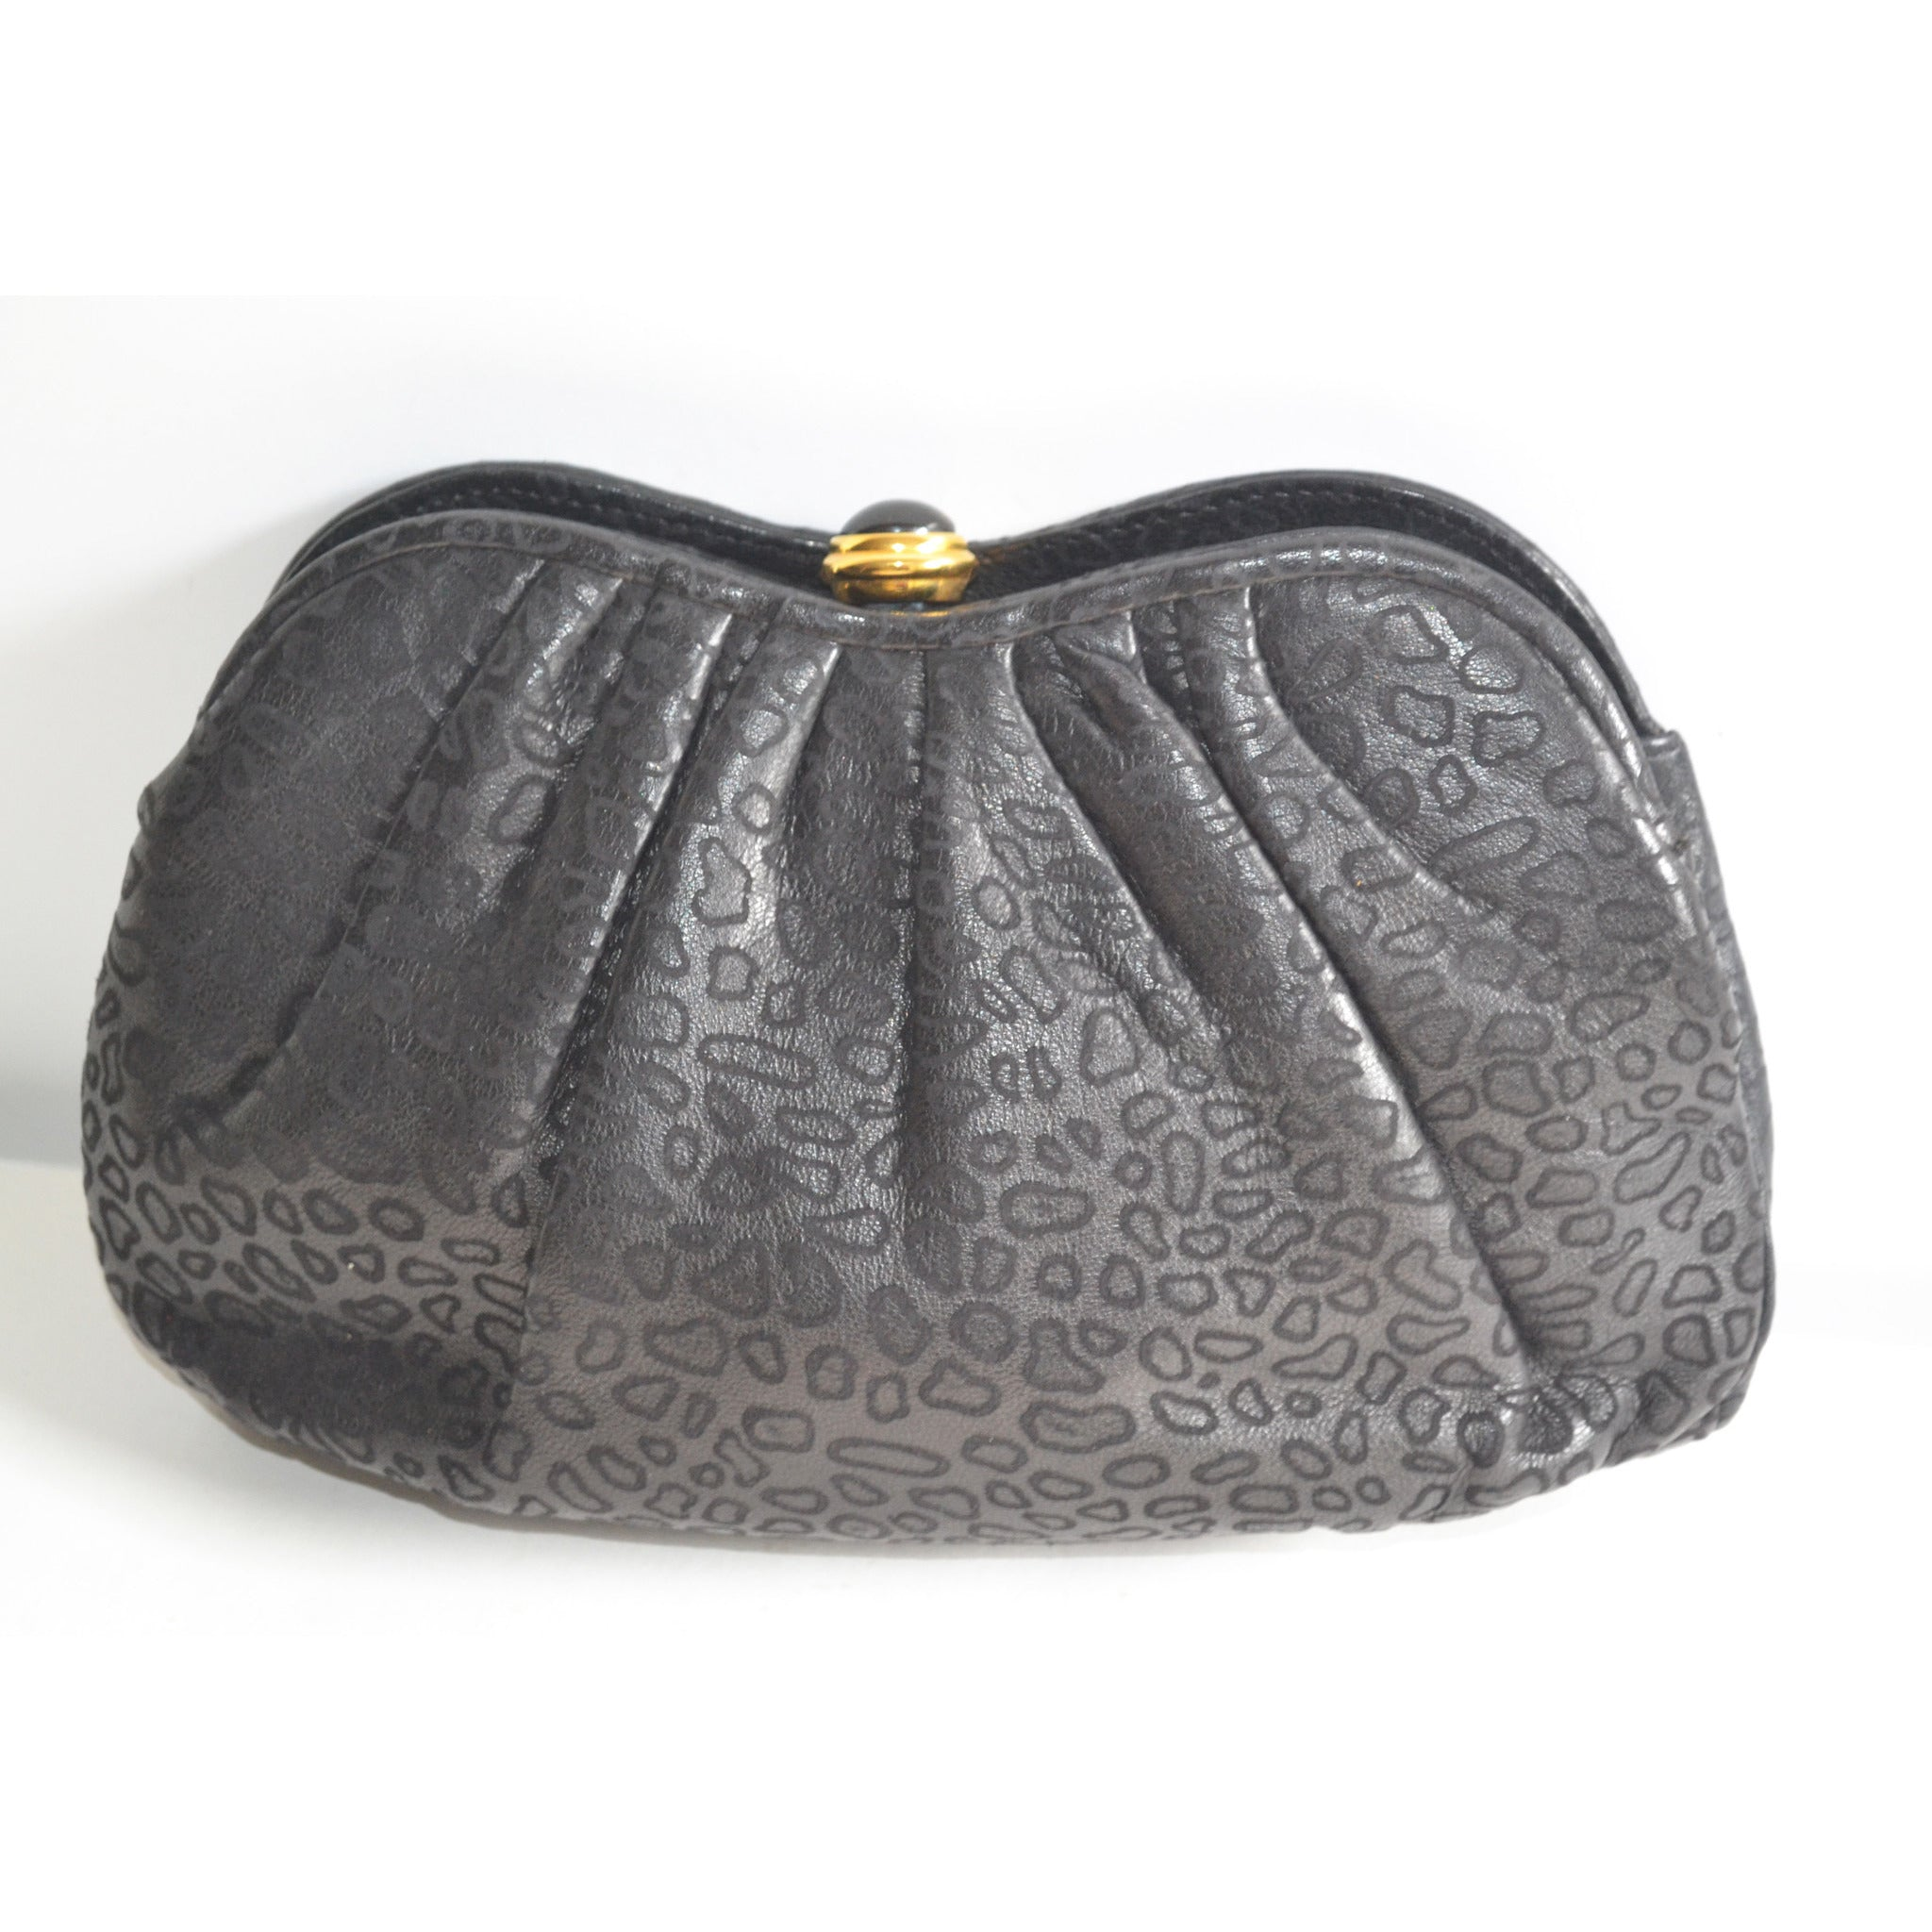 Vintage Embossed Black Leather Clutch Purse By Tiras